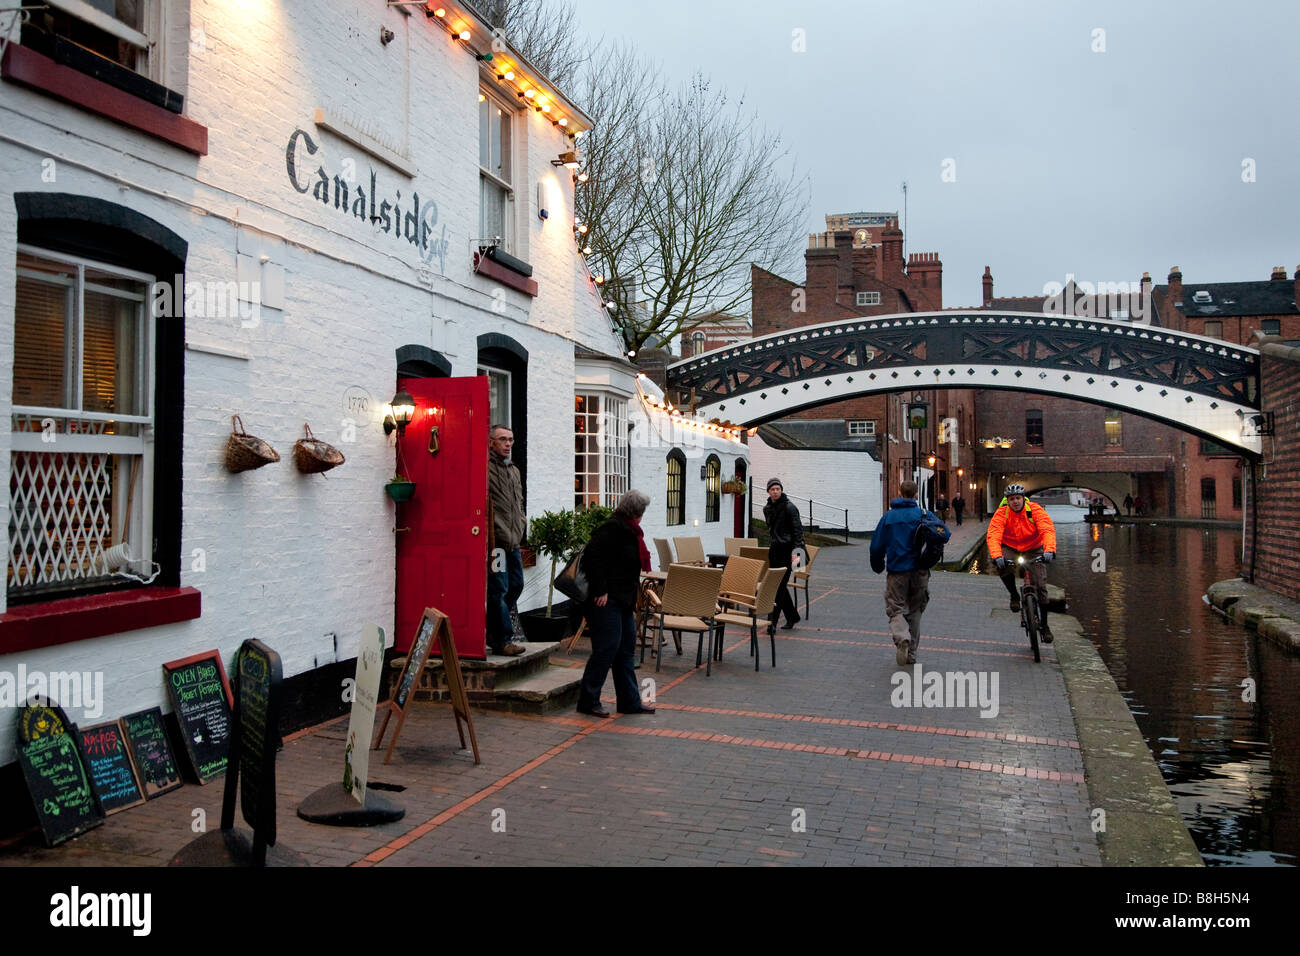 Canalside cafe, the Worcester Bar bridge and a busy towpath at dusk at the Gas Street Basin Birmingham - Stock Image